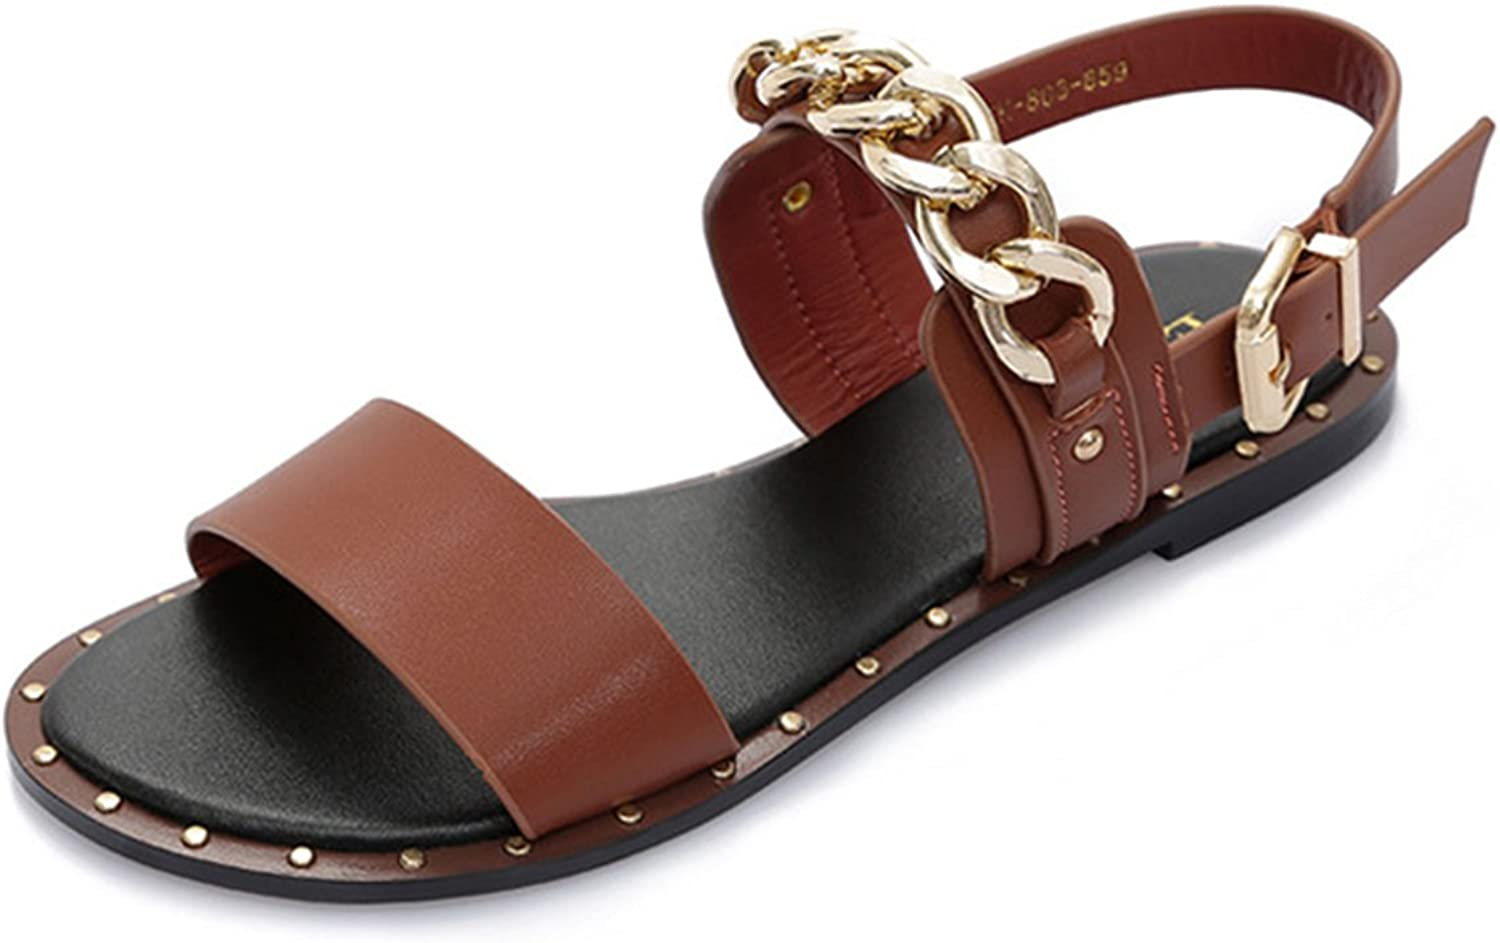 Mageed Fashion Leather Sandals Women Summer Dress with Metal Chain Beach shoes Flat Sandals